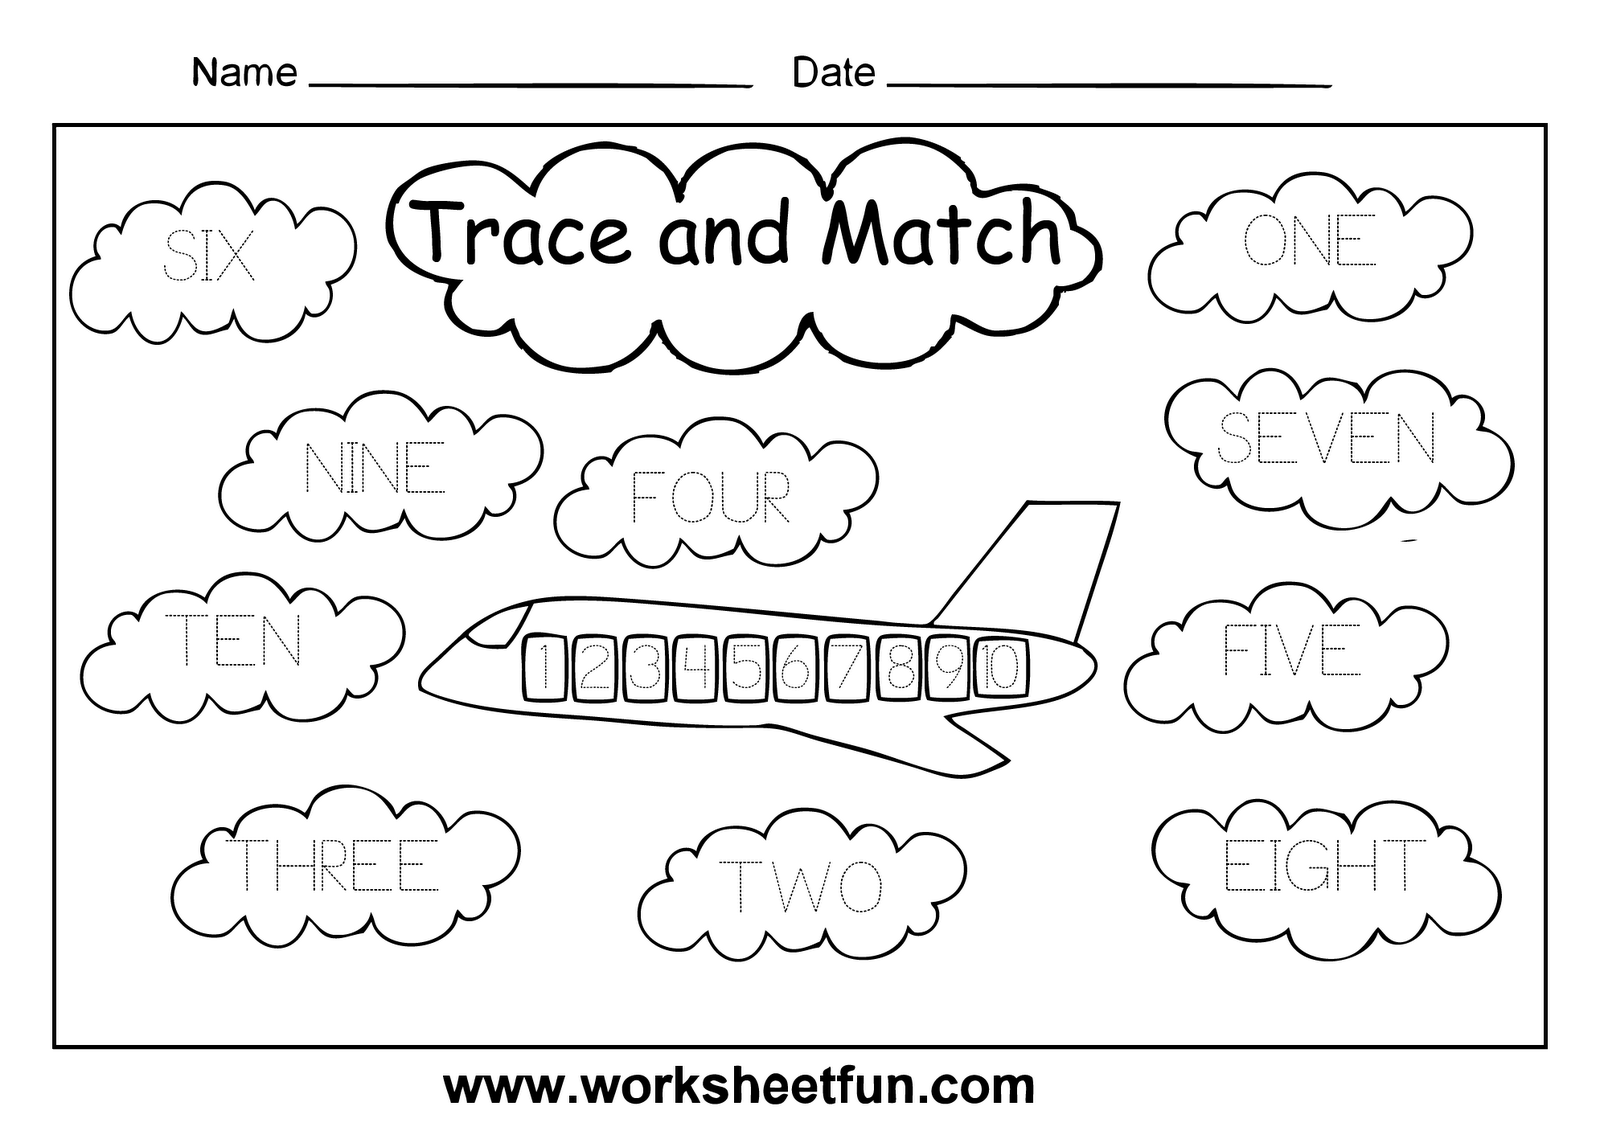 Proatmealus  Picturesque Worksheet Numbers    Reocurent With Inspiring Printable Worksheets On Adjectives Besides Earth Worksheets For Kindergarten Furthermore Free Letter Formation Worksheets With Charming Art Worksheets For Middle School Free Also Grade  Pattern Worksheets In Addition Grammar Worksheets Pronouns And A Sound Worksheets As Well As Writing Algebraic Equations Worksheets Additionally Left Handed Handwriting Worksheets From Reocurentcom With Proatmealus  Inspiring Worksheet Numbers    Reocurent With Charming Printable Worksheets On Adjectives Besides Earth Worksheets For Kindergarten Furthermore Free Letter Formation Worksheets And Picturesque Art Worksheets For Middle School Free Also Grade  Pattern Worksheets In Addition Grammar Worksheets Pronouns From Reocurentcom